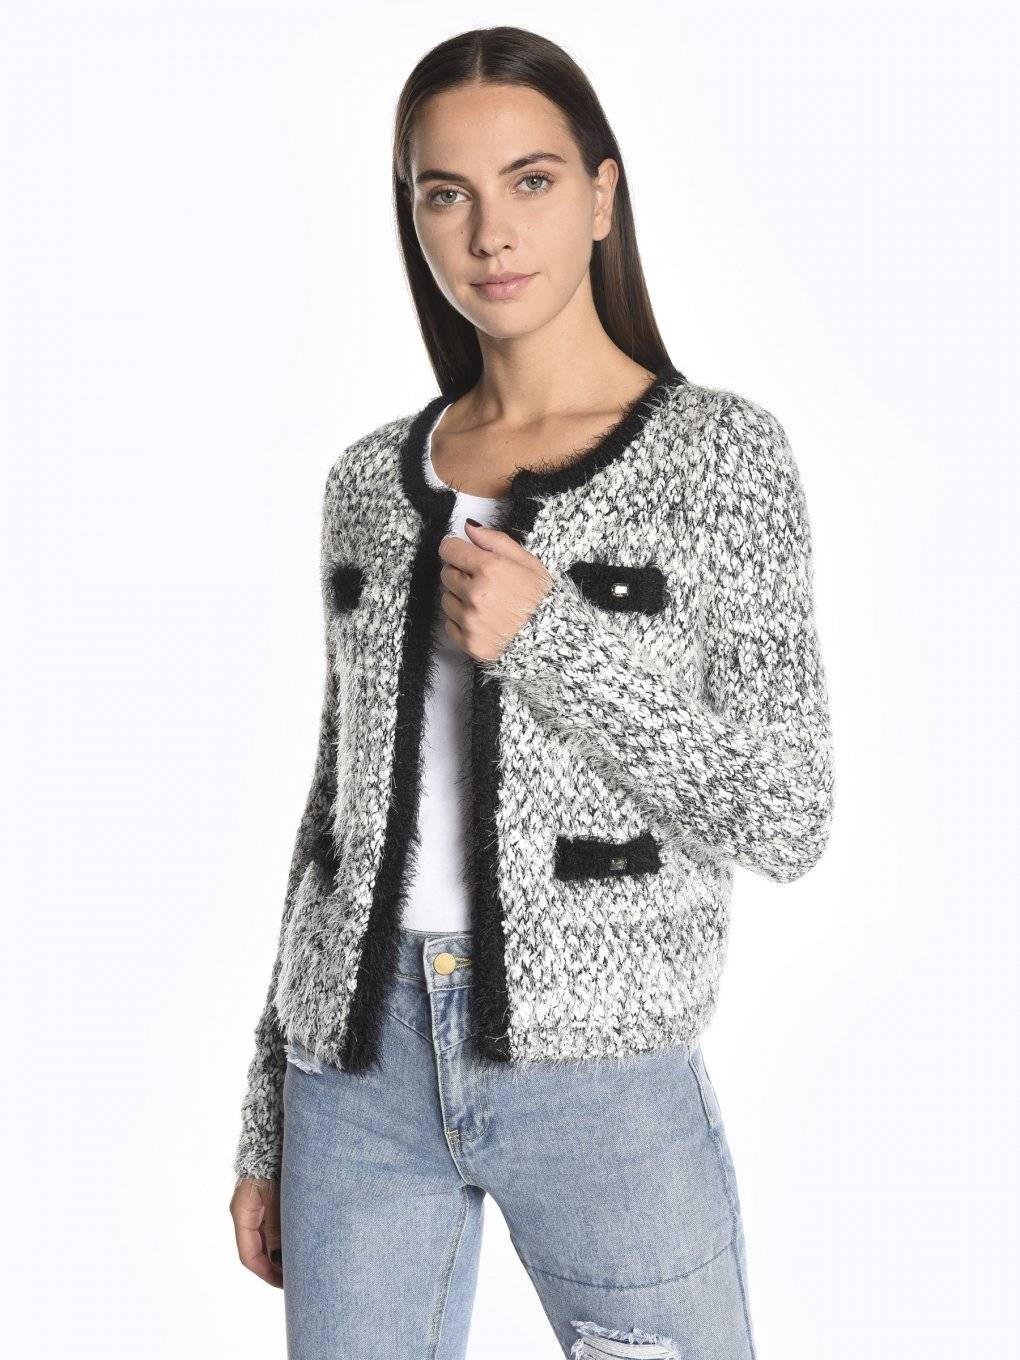 Fuzzy marled cardigan with decorative stones